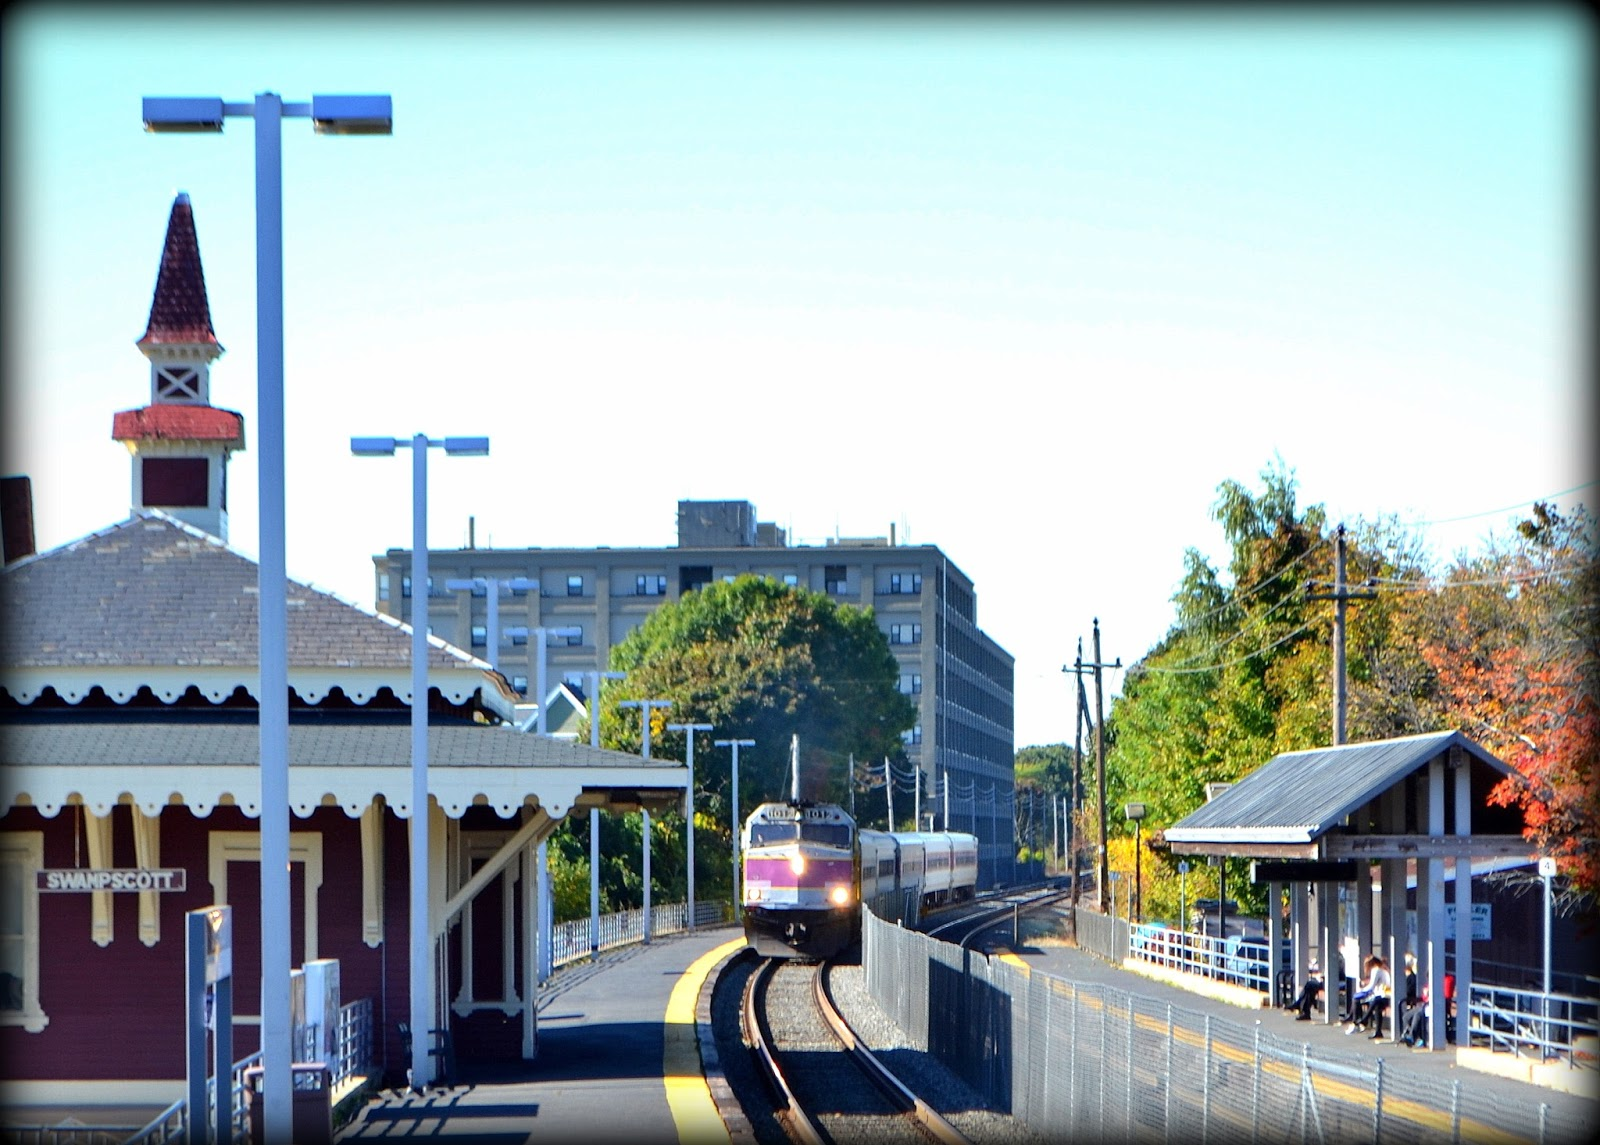 mbta, train, rail, station, shadow, swampscott